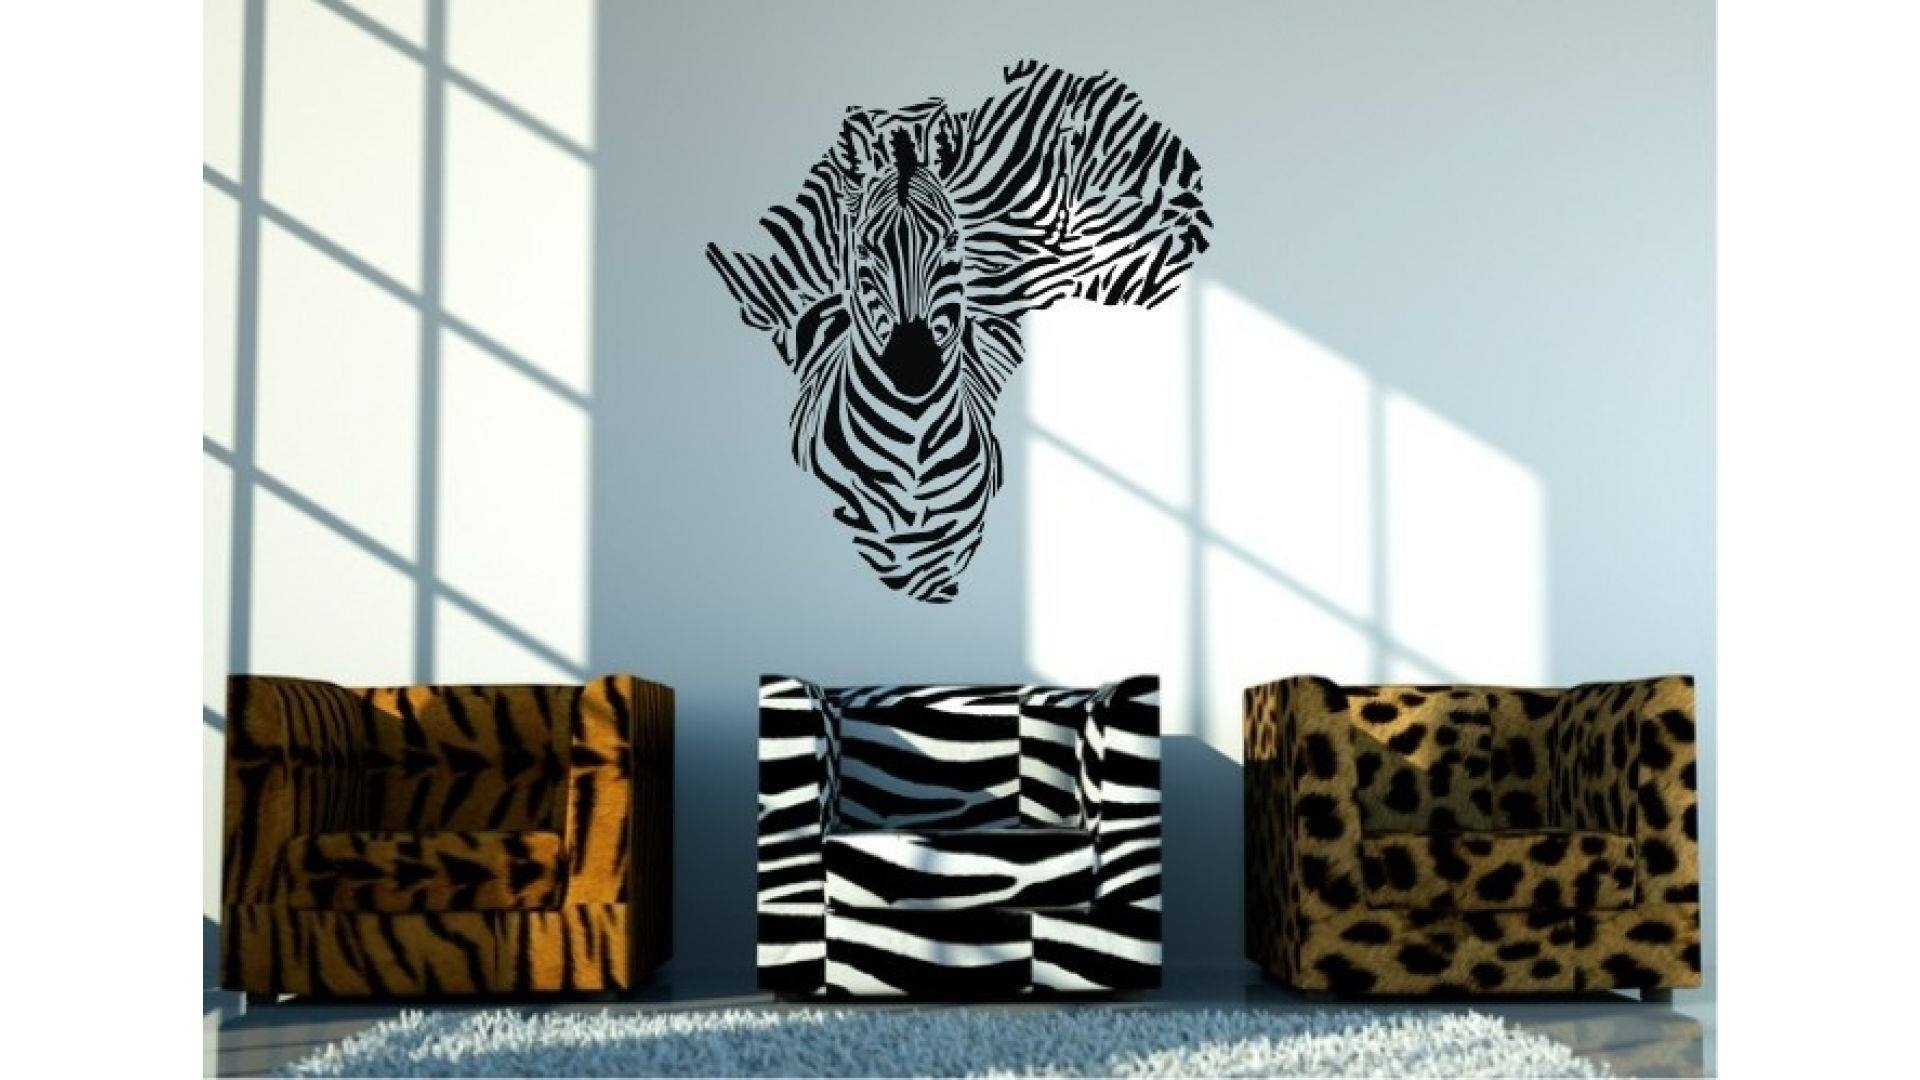 Creative Design Zebra Wall Art Canvas Stickers Australia Nz Decals Inside Widely Used Zebra Wall Art Canvas (View 3 of 15)